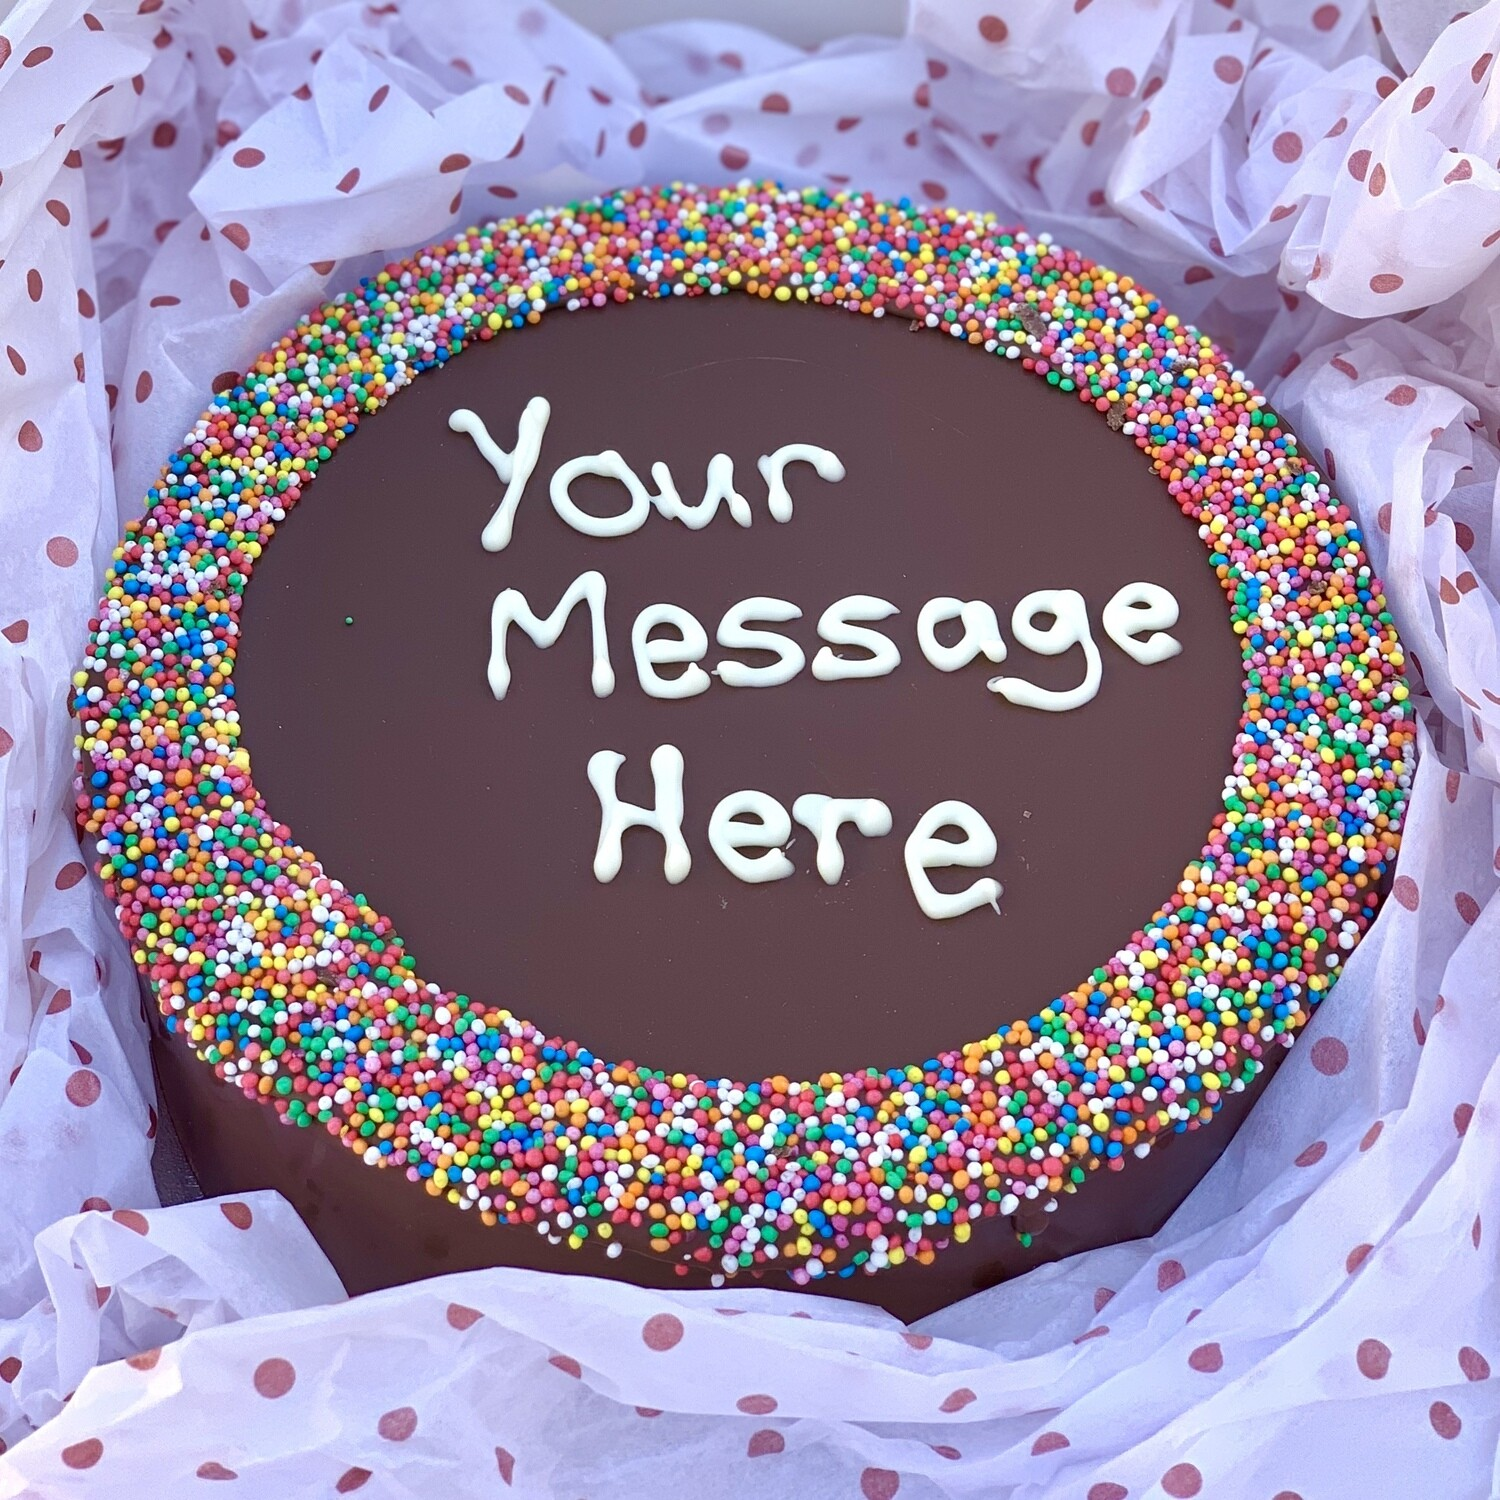 Say It on a Cake